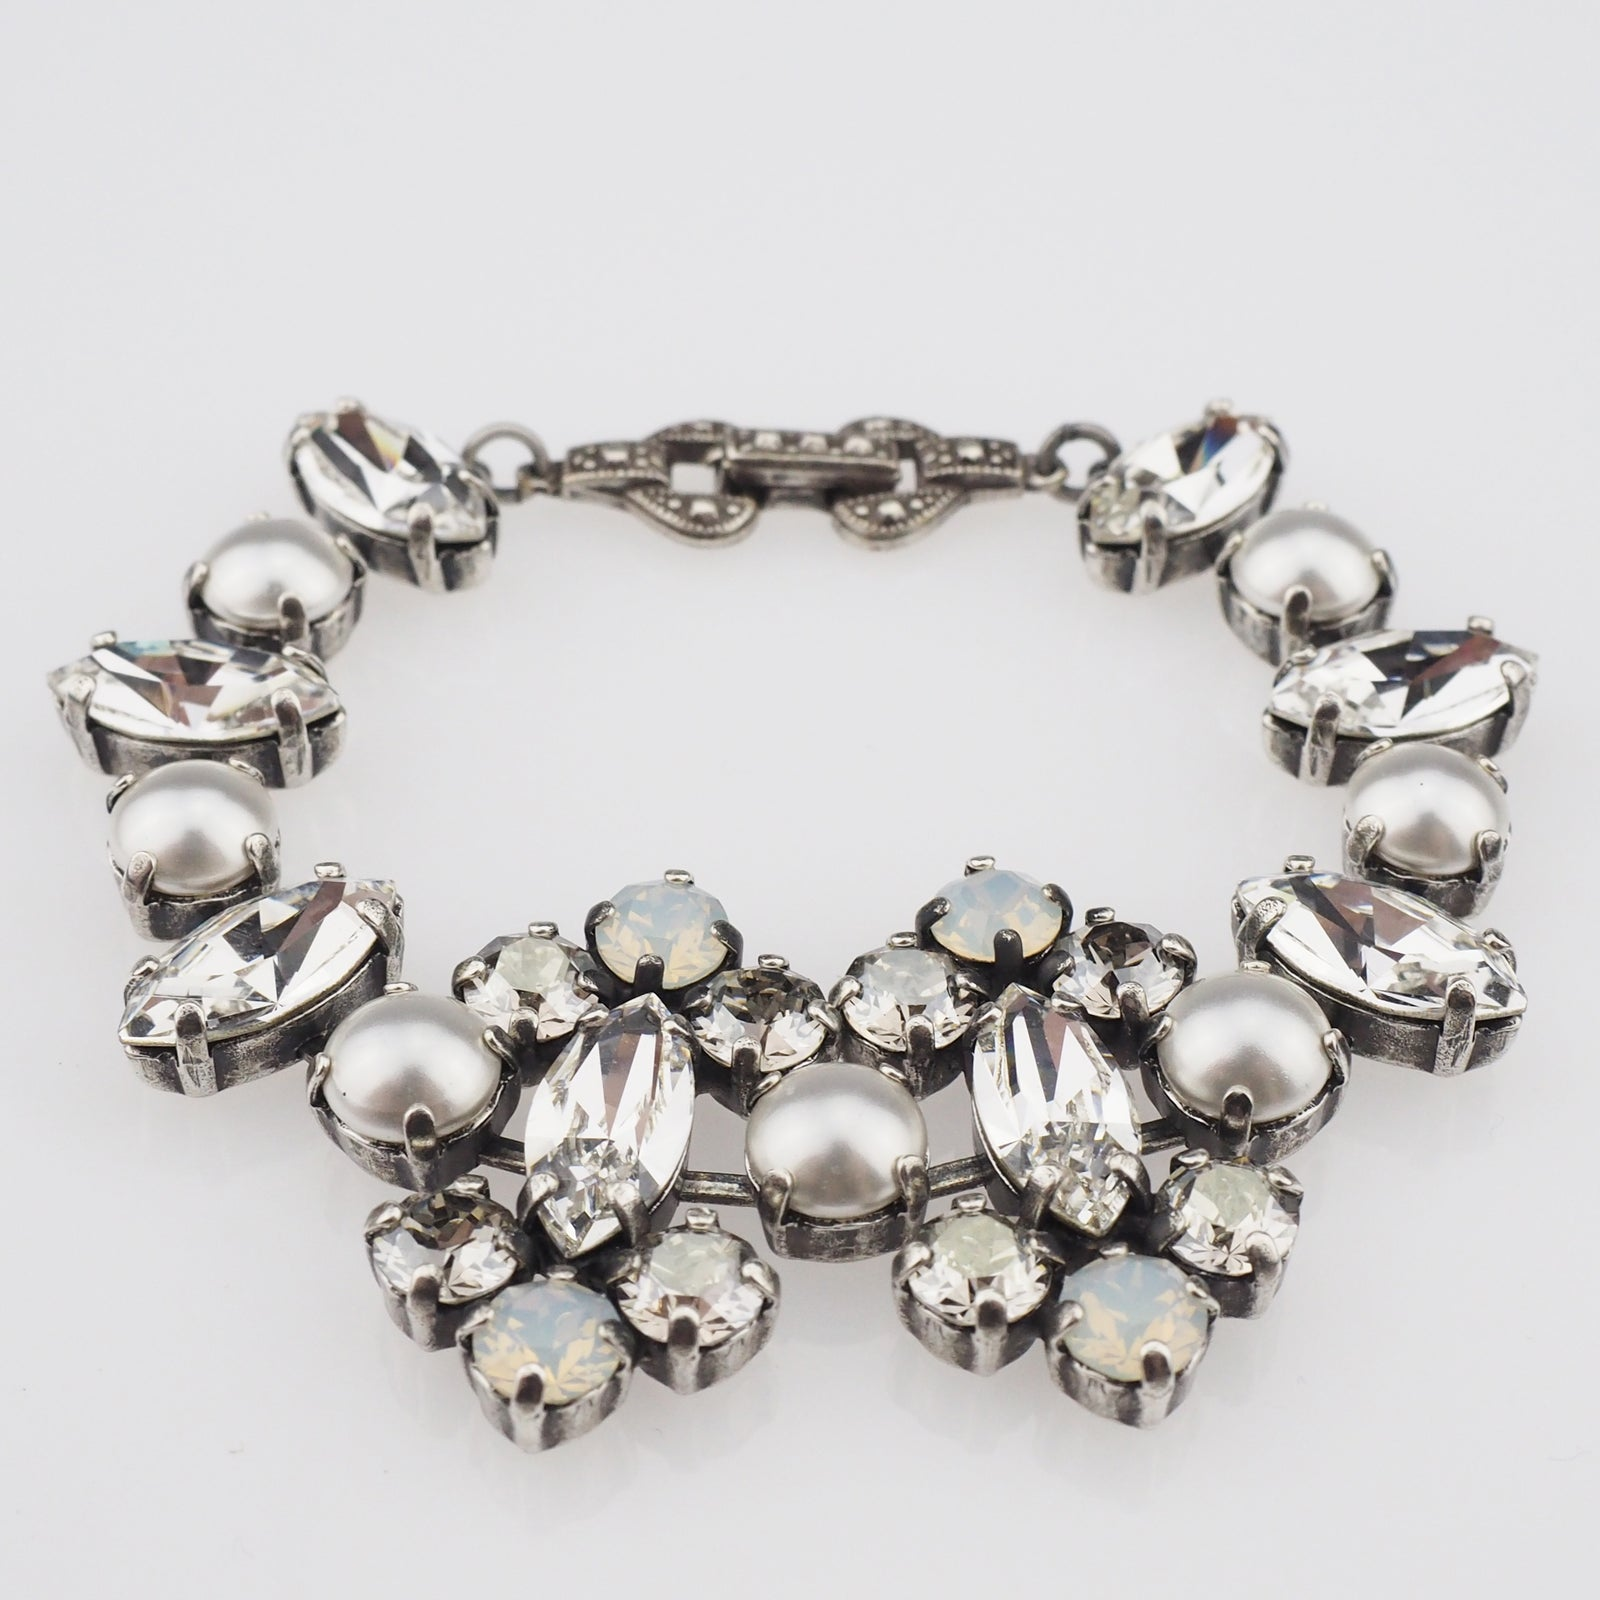 Surrender Bracelet - White Pearl